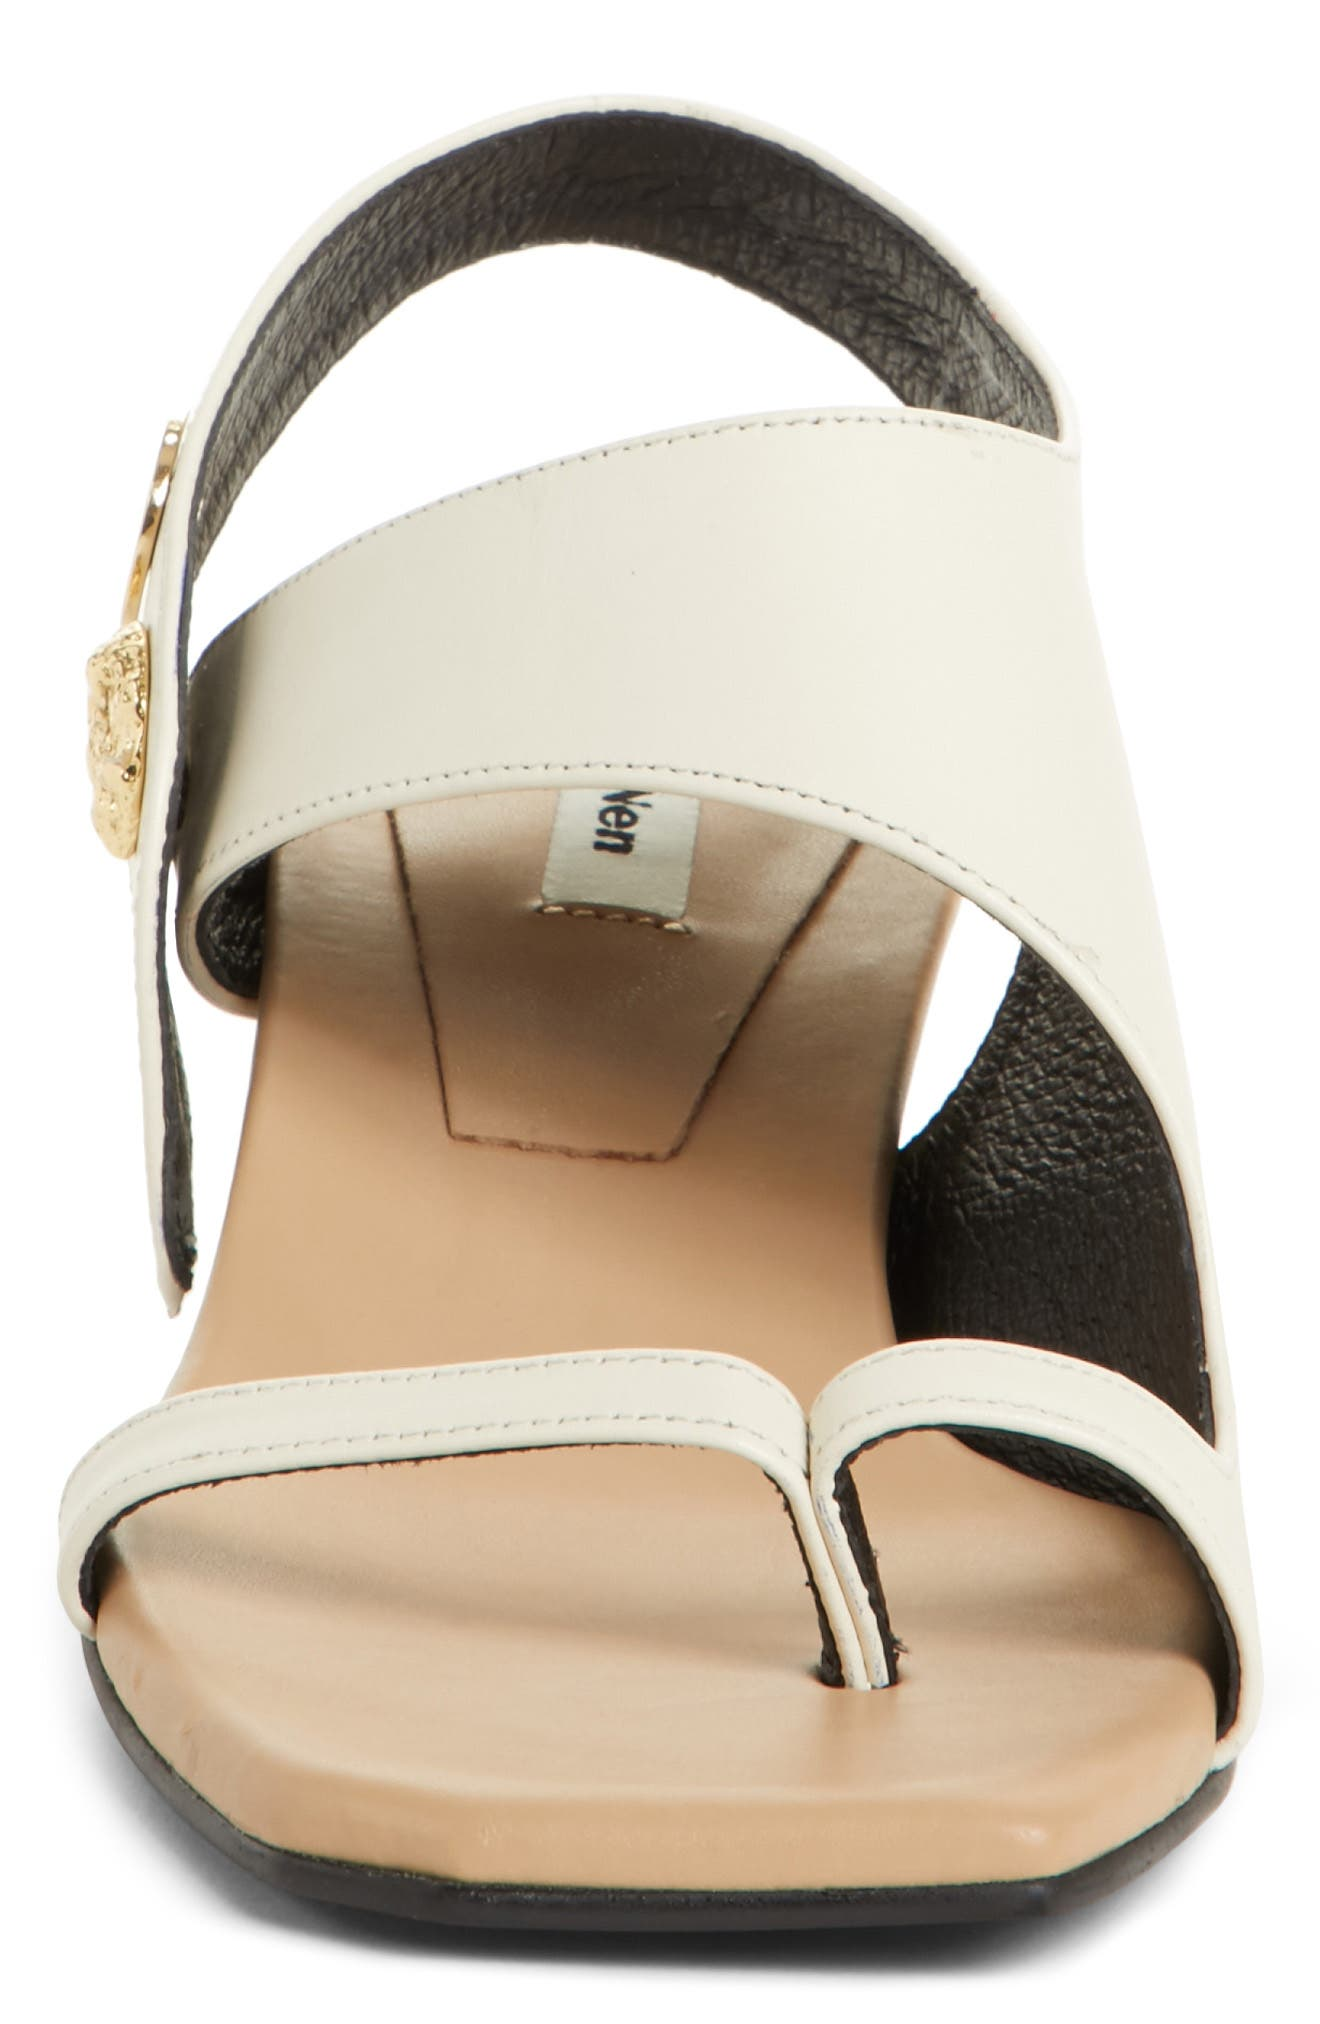 Embellished Leather Sandal,                             Alternate thumbnail 4, color,                             250